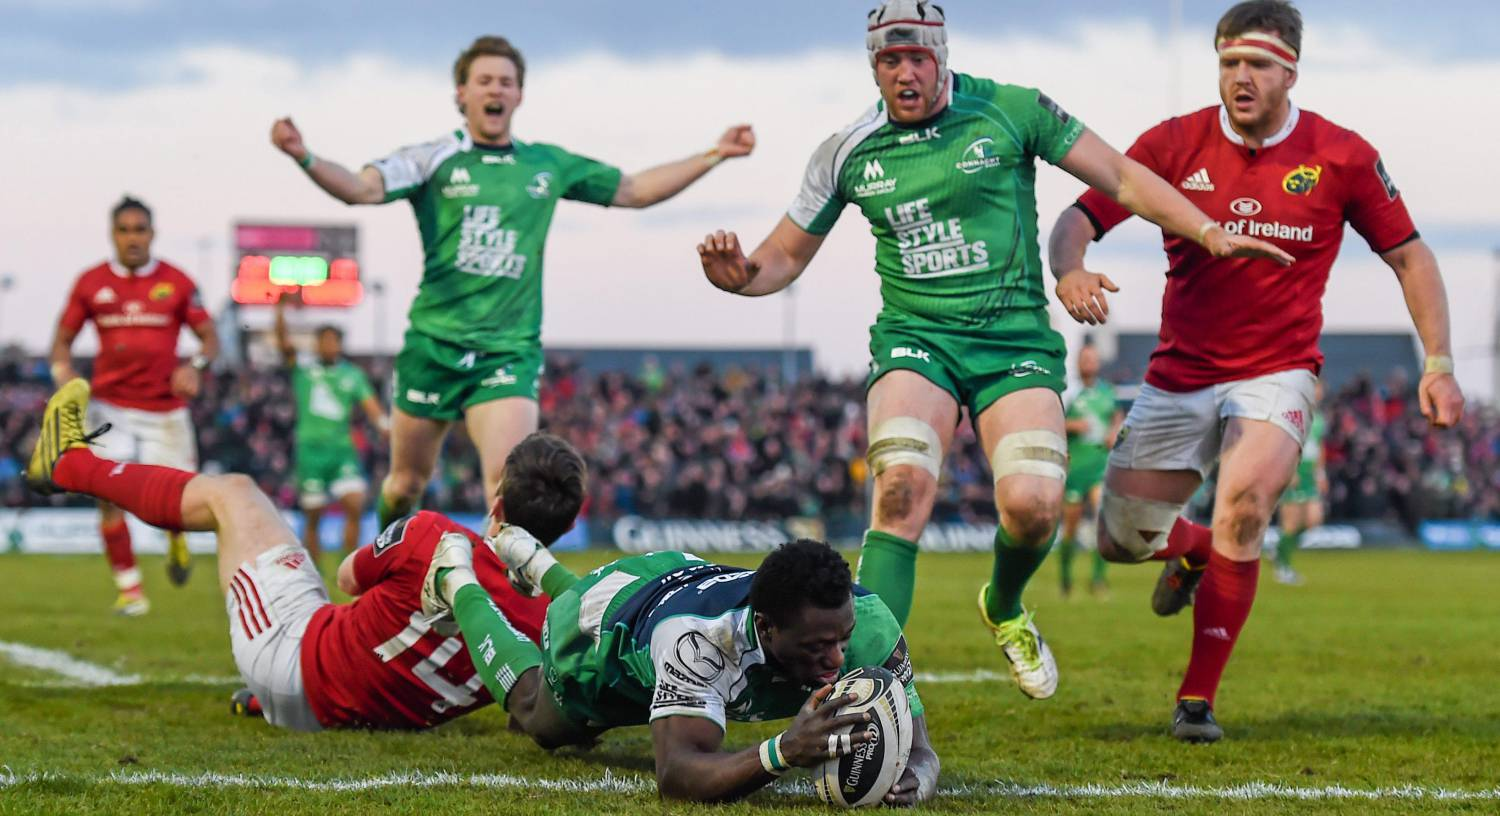 Niyi Adeolokun and Eoin McKeon among 12 players to exit Connacht